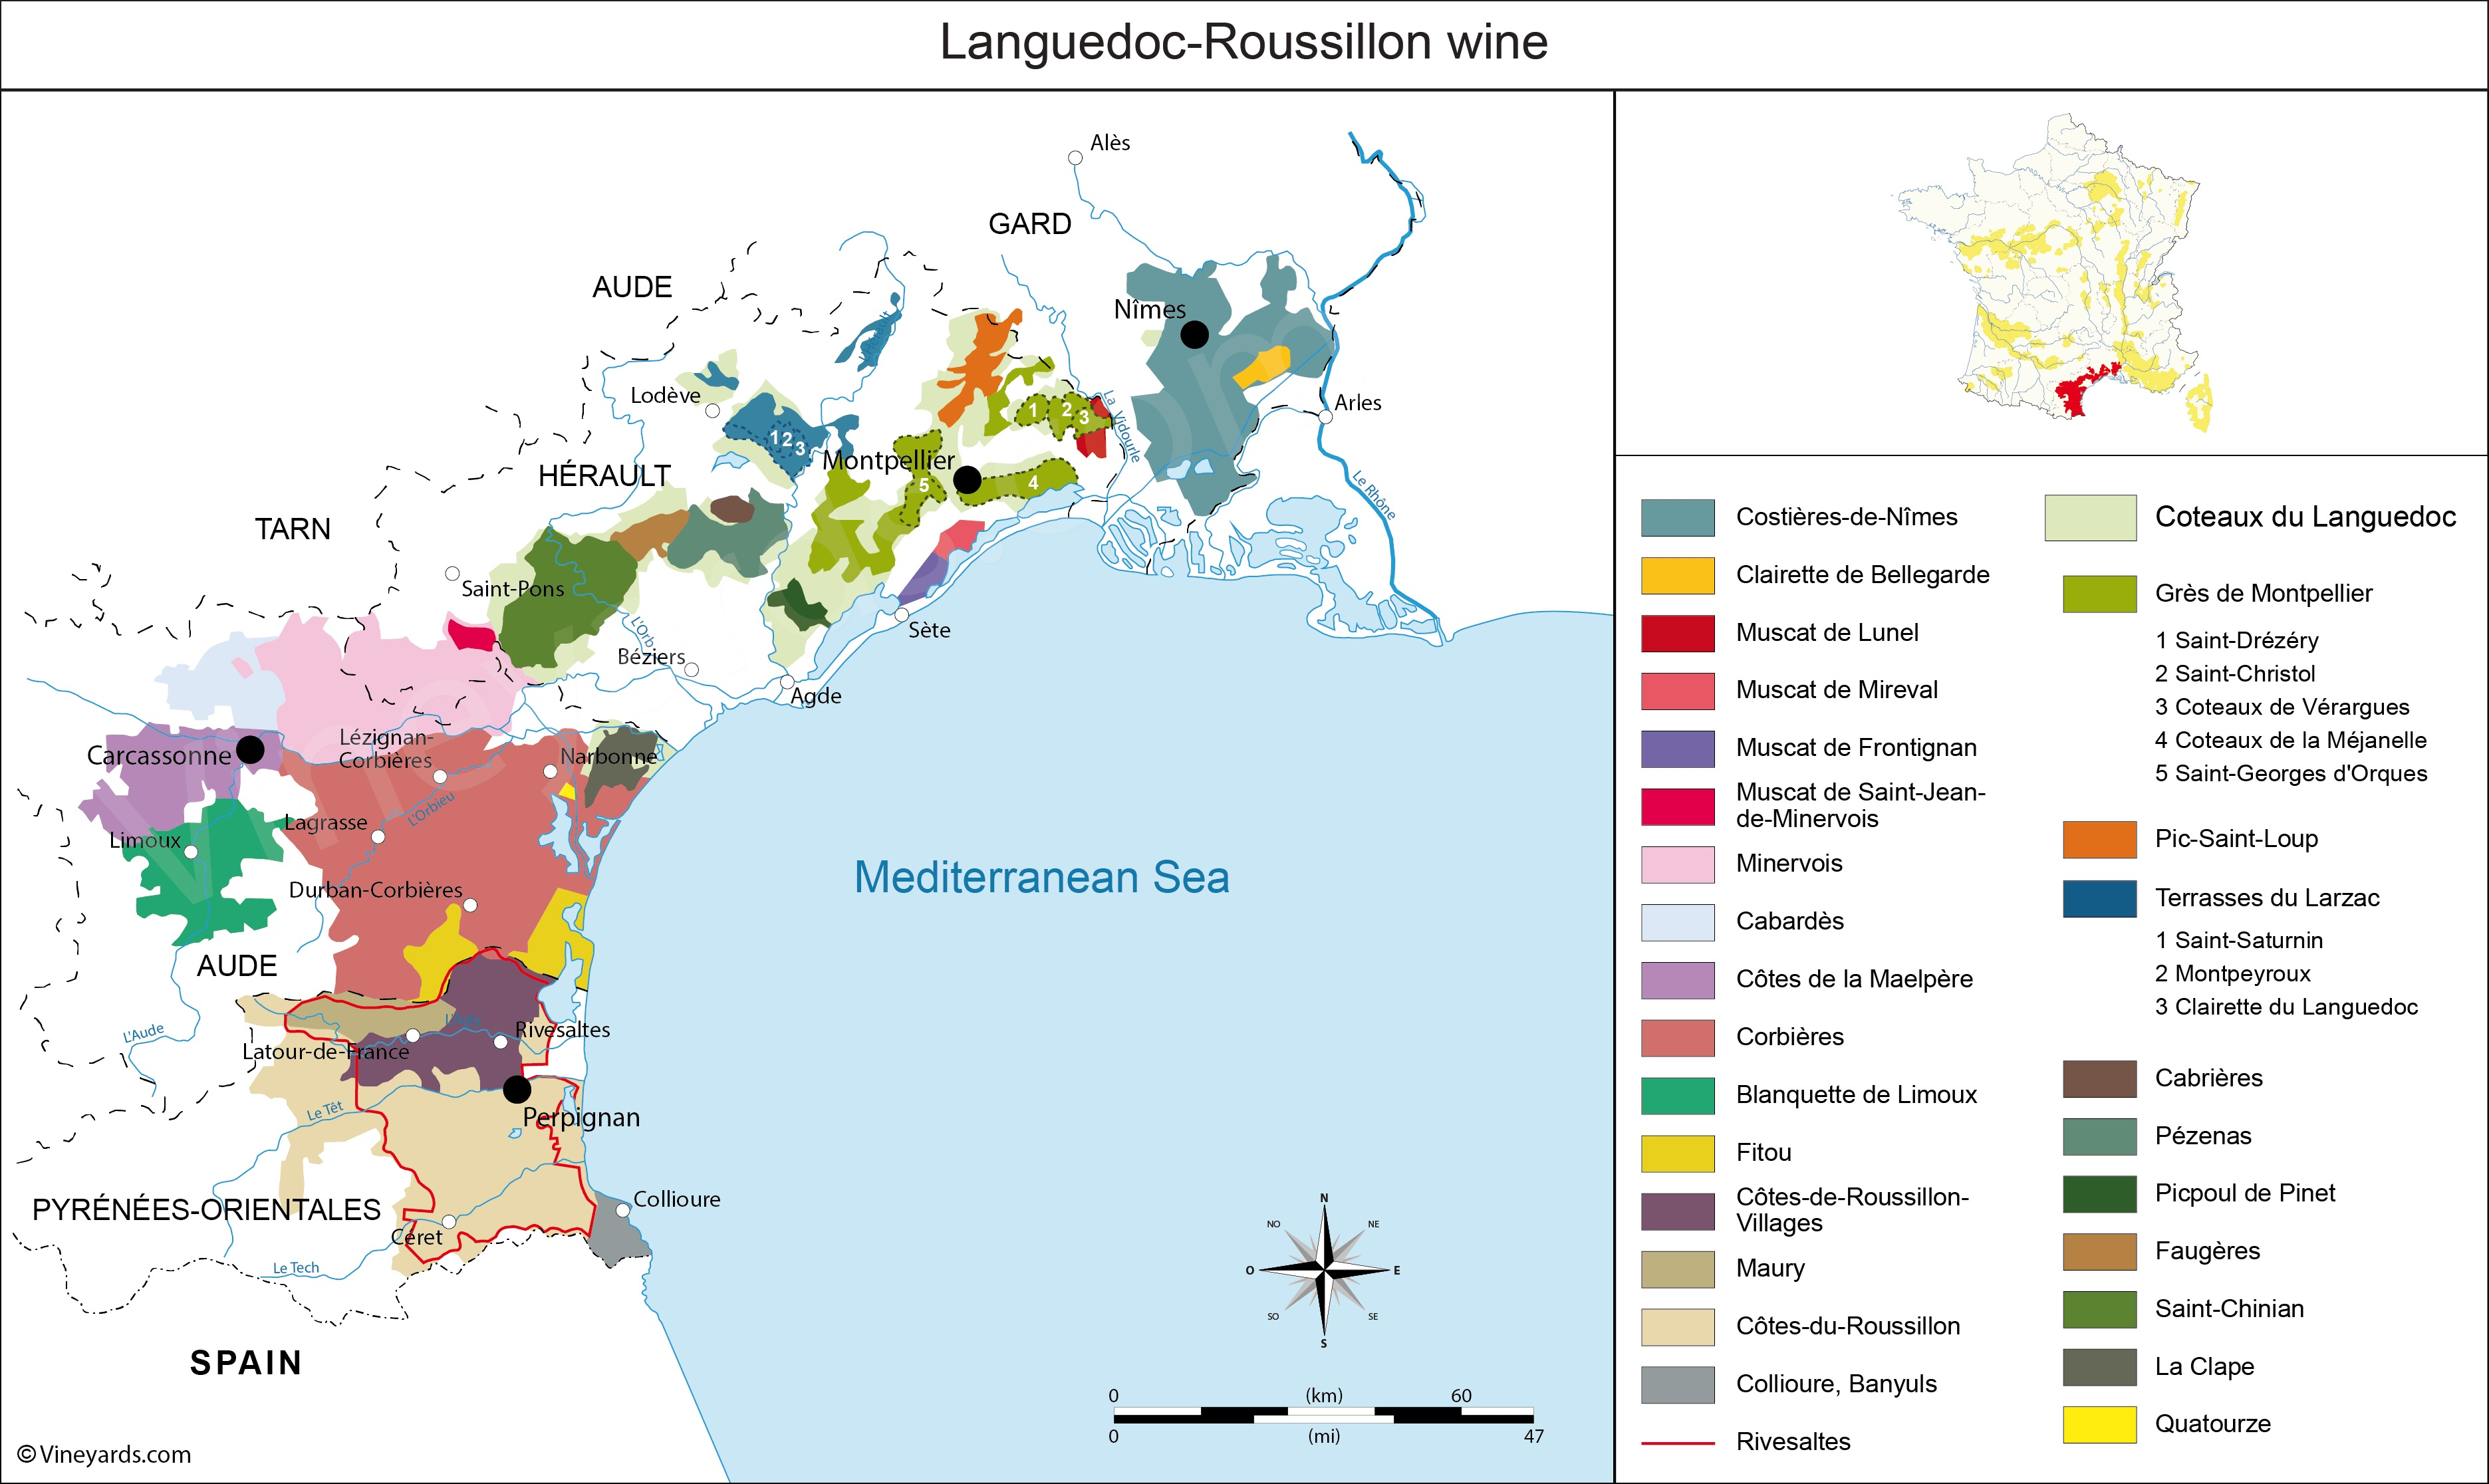 Wine Region Map Of France.Fresh And Clean Wines In Southern France Corbieres Savor The Harvest